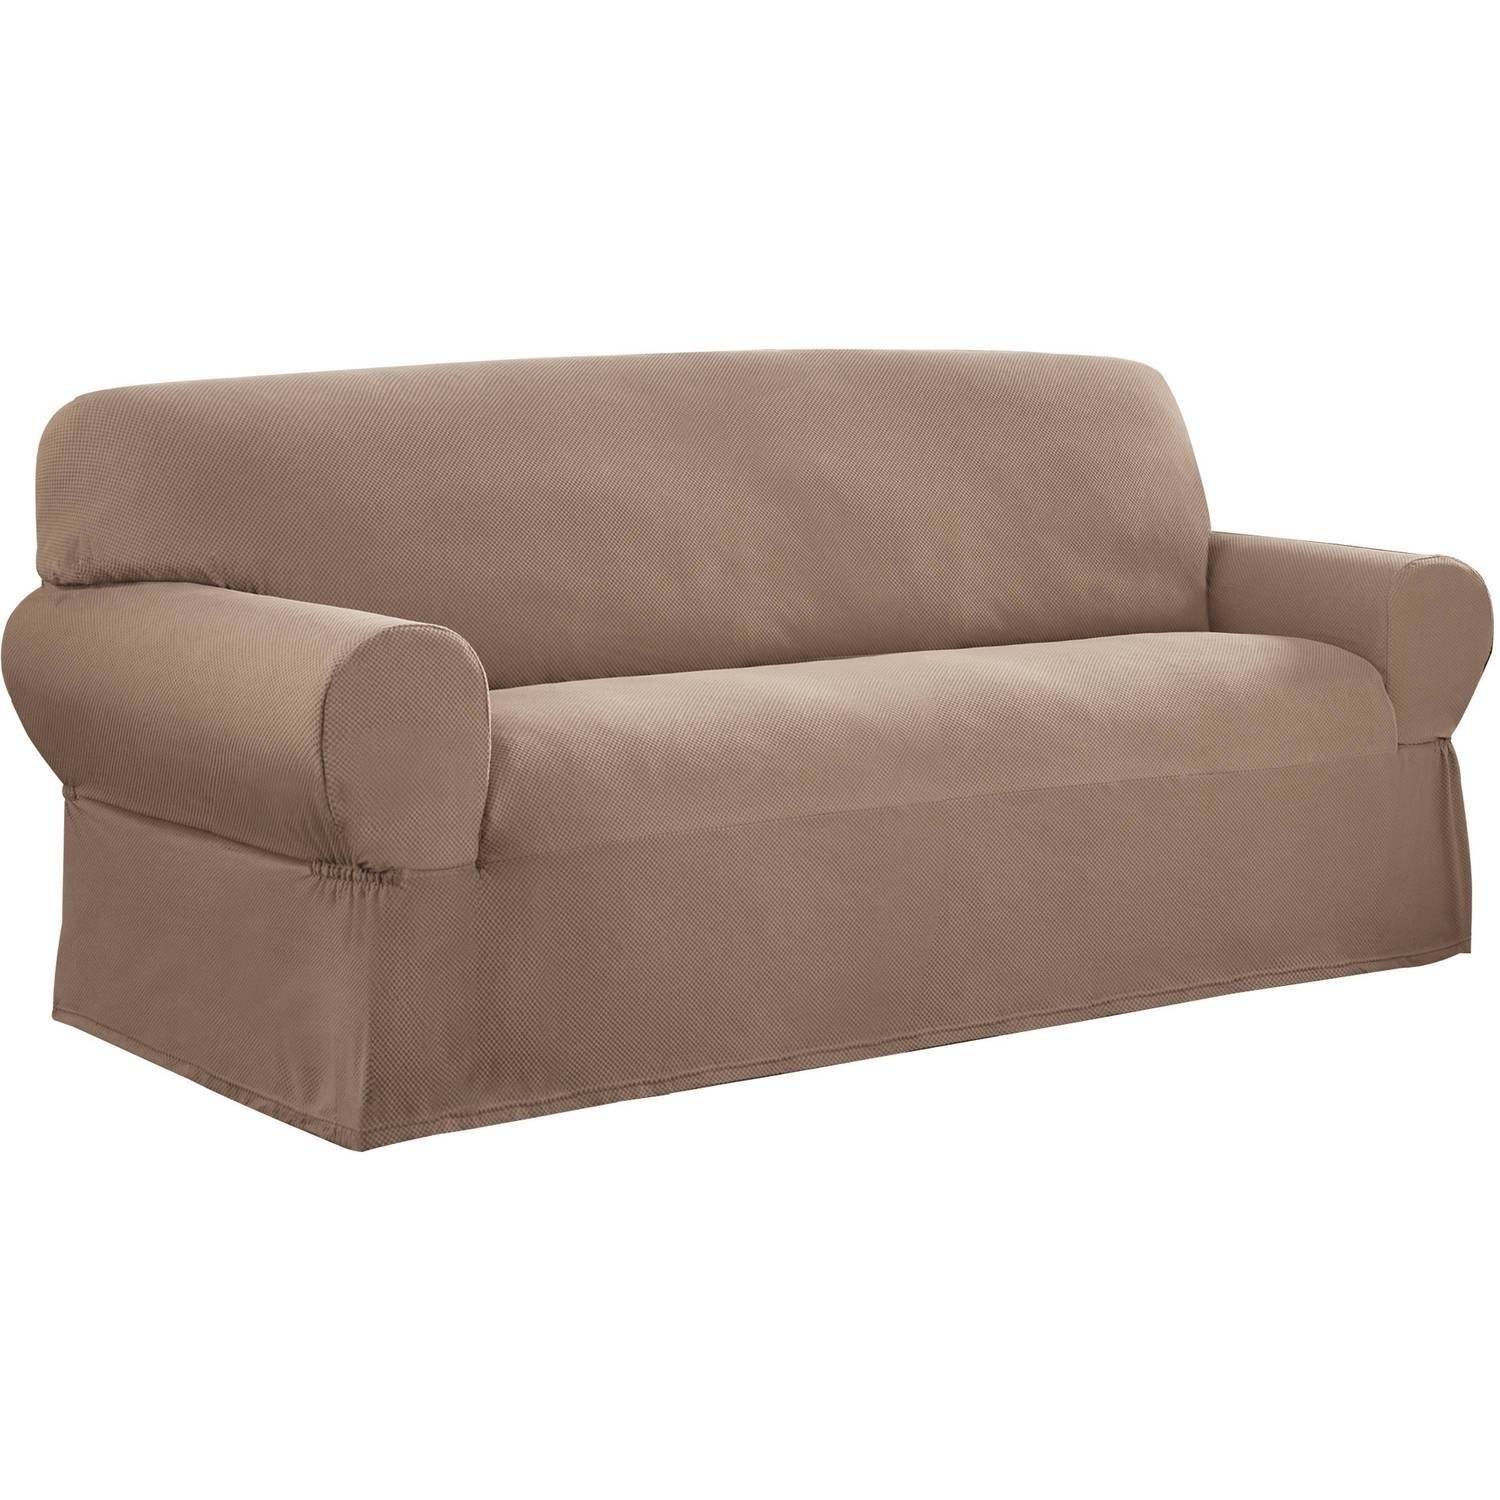 Mainstays 1-Piece Stretch Fabric Sofa Slipcover - Walmart within Slipcovers Sofas (Image 20 of 30)